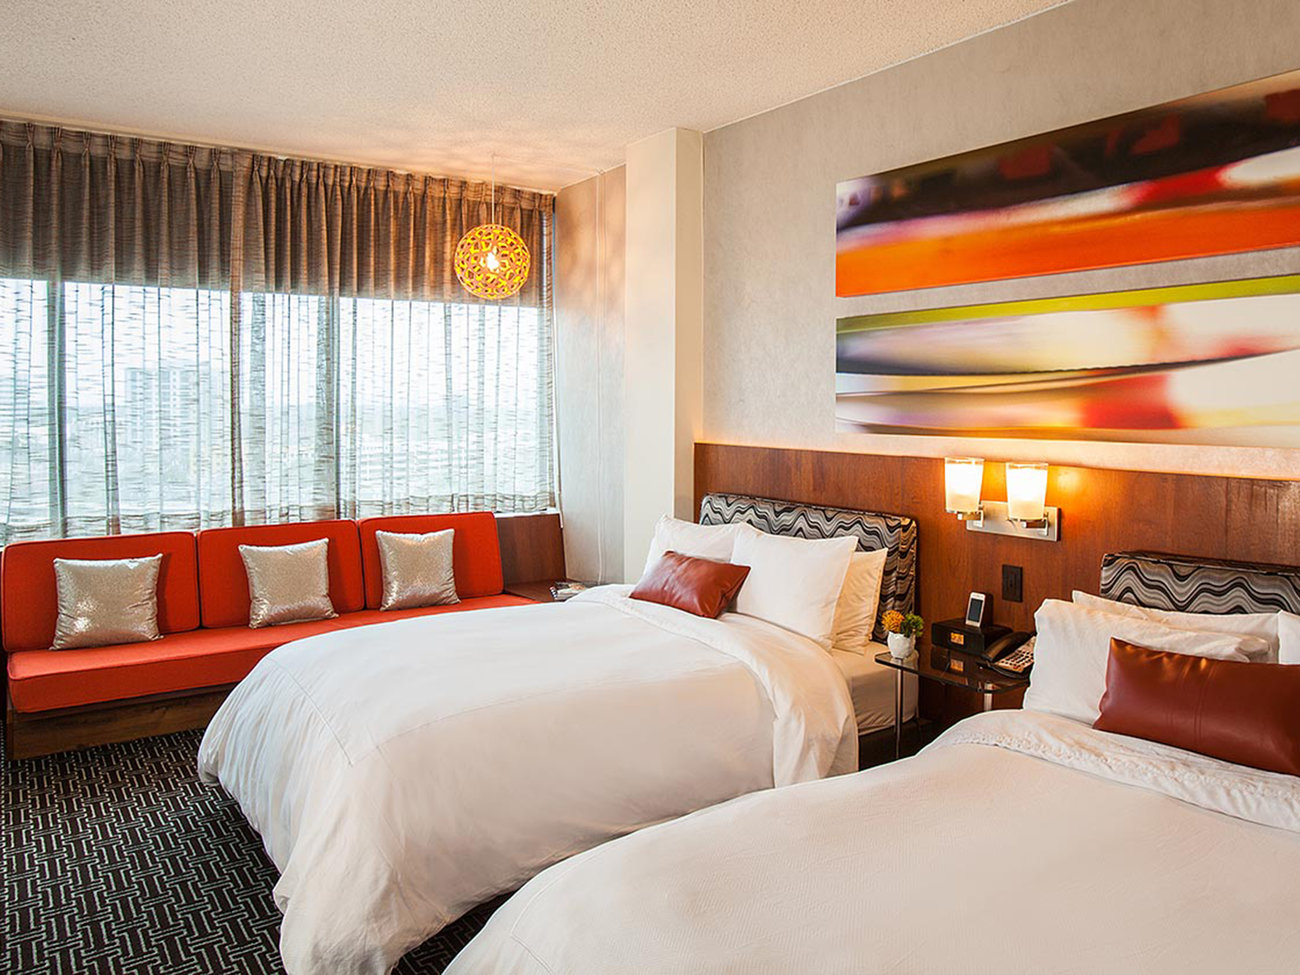 Hotel Derek in Houston